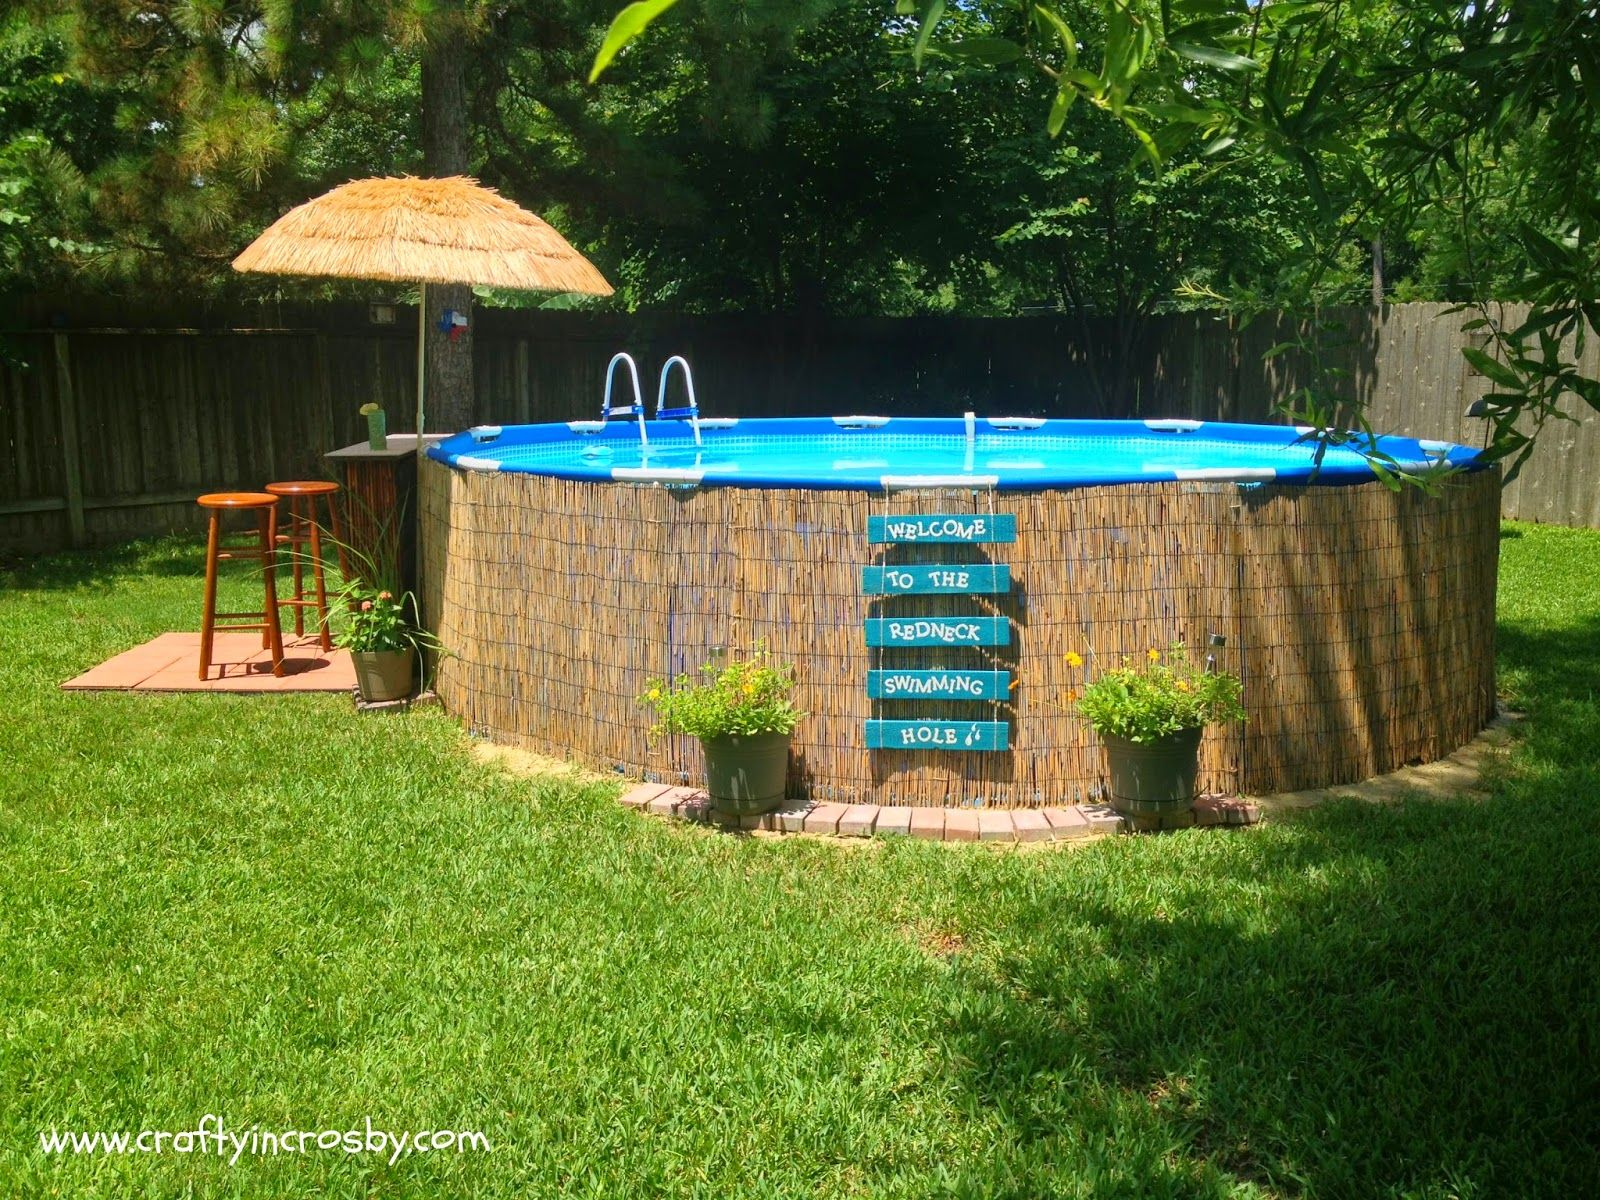 Intex Pool Nicht Rund Pallet Tiki Bar Tiki Bar Diy Redneck Swimming Hole Dollar Tree